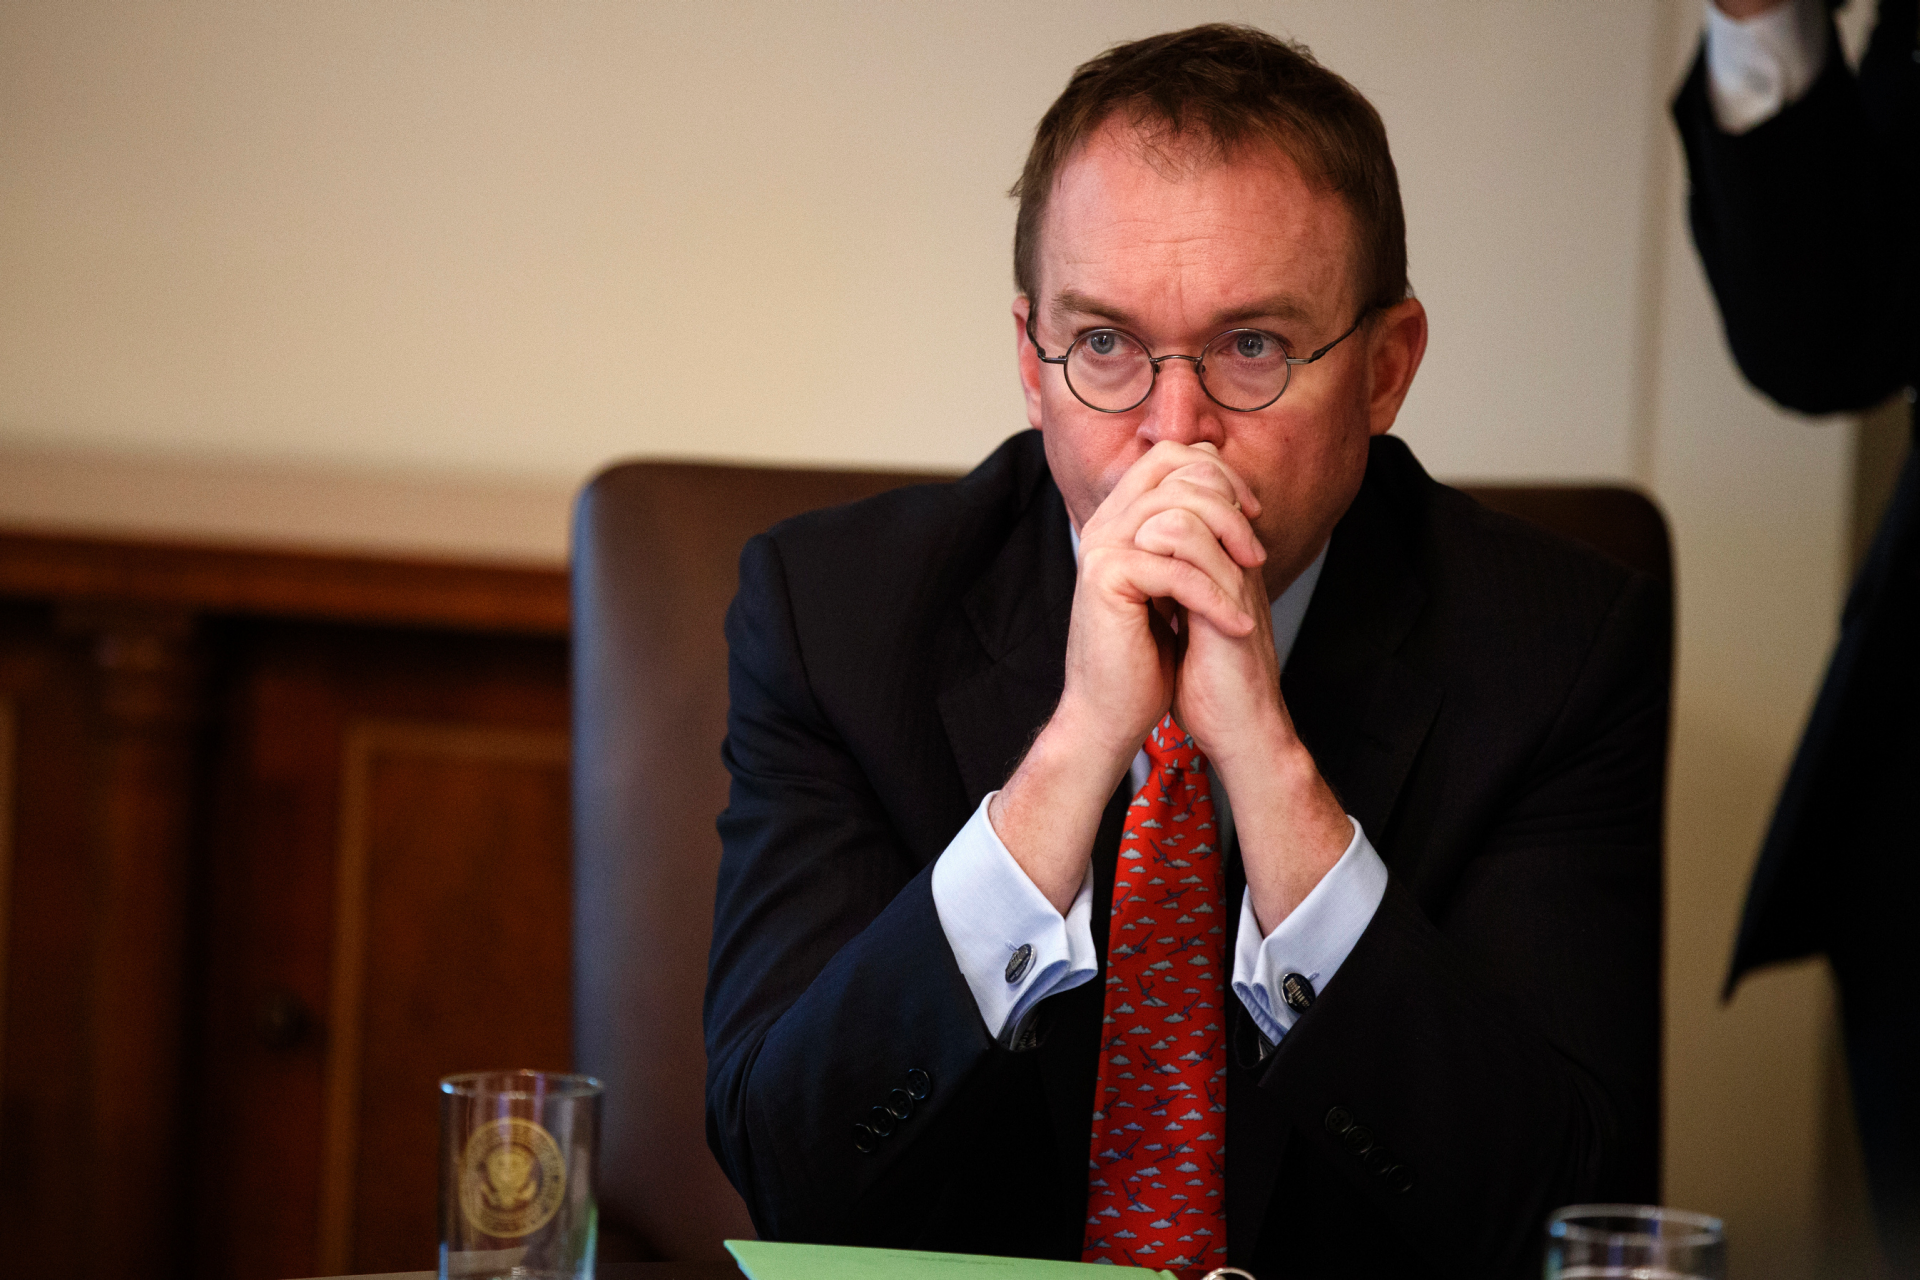 Mulvaney comments seized on by critics saying it's proof of Ukraine quid pro quo